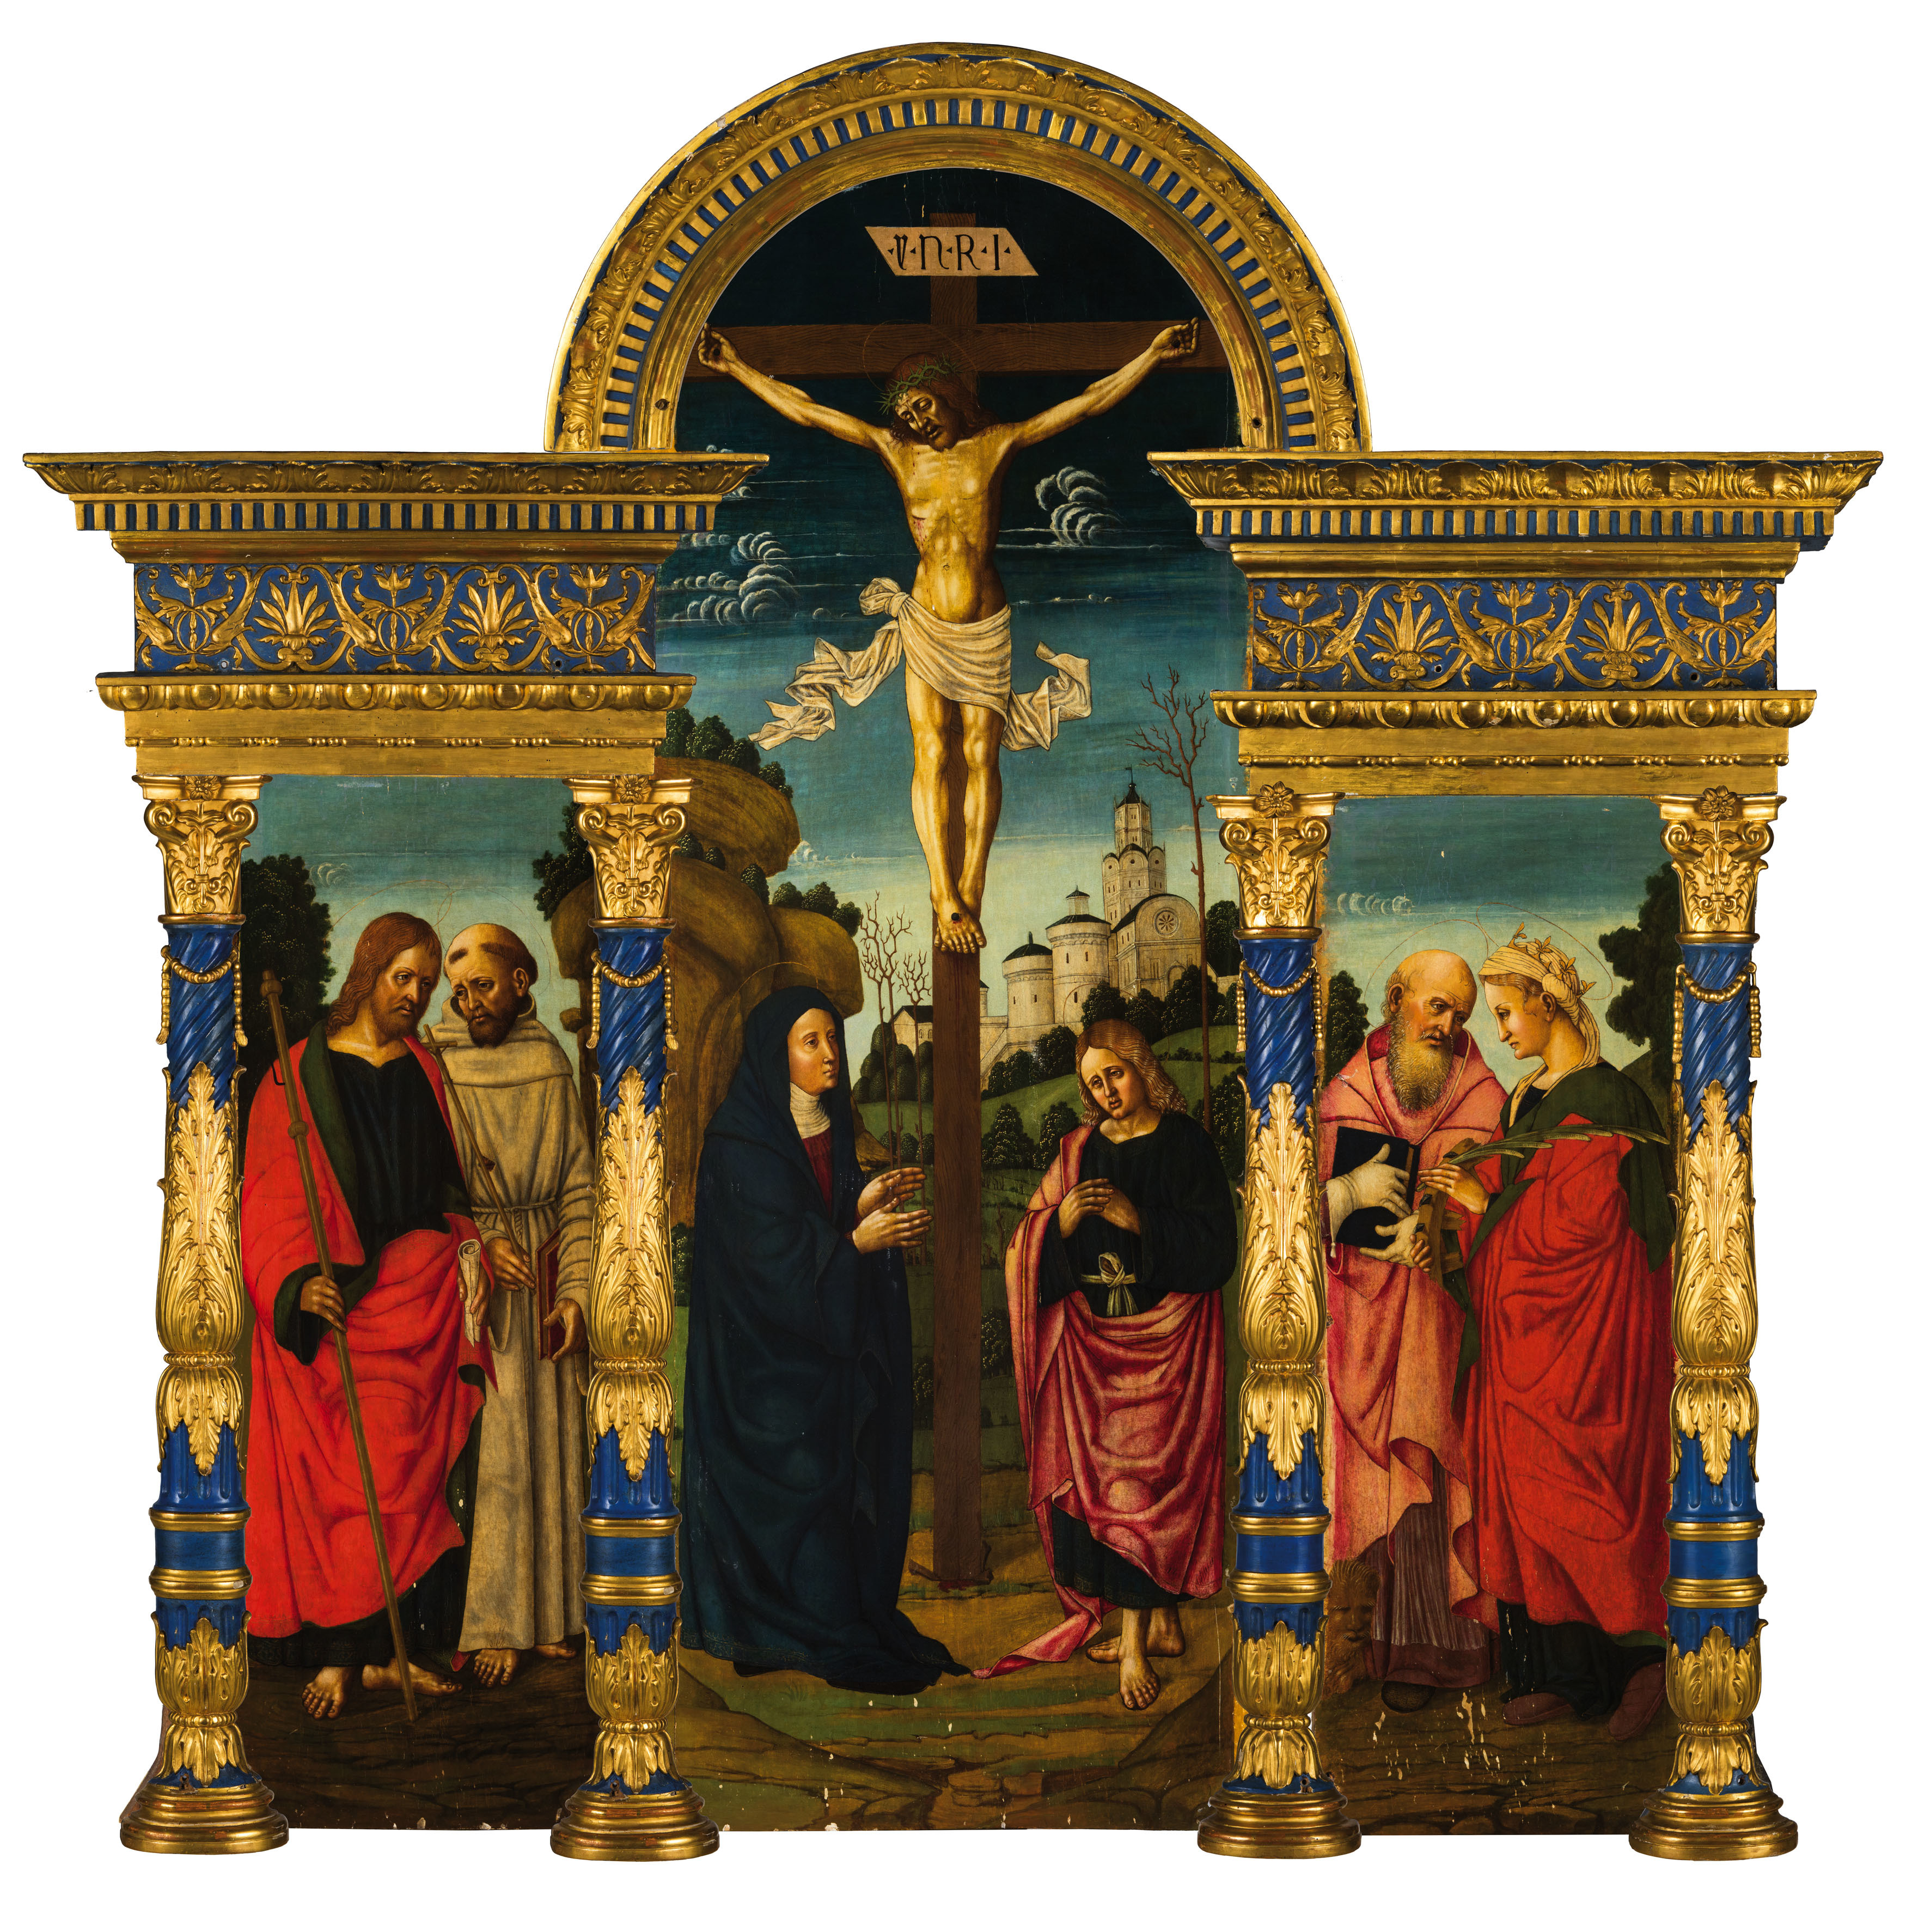 AIMO VOLPI (Casale, active 1491-1524) and BALZARINI VOLPI (Casale, active 1493-1555) - triptych with crucifixion and saints, oil / wood